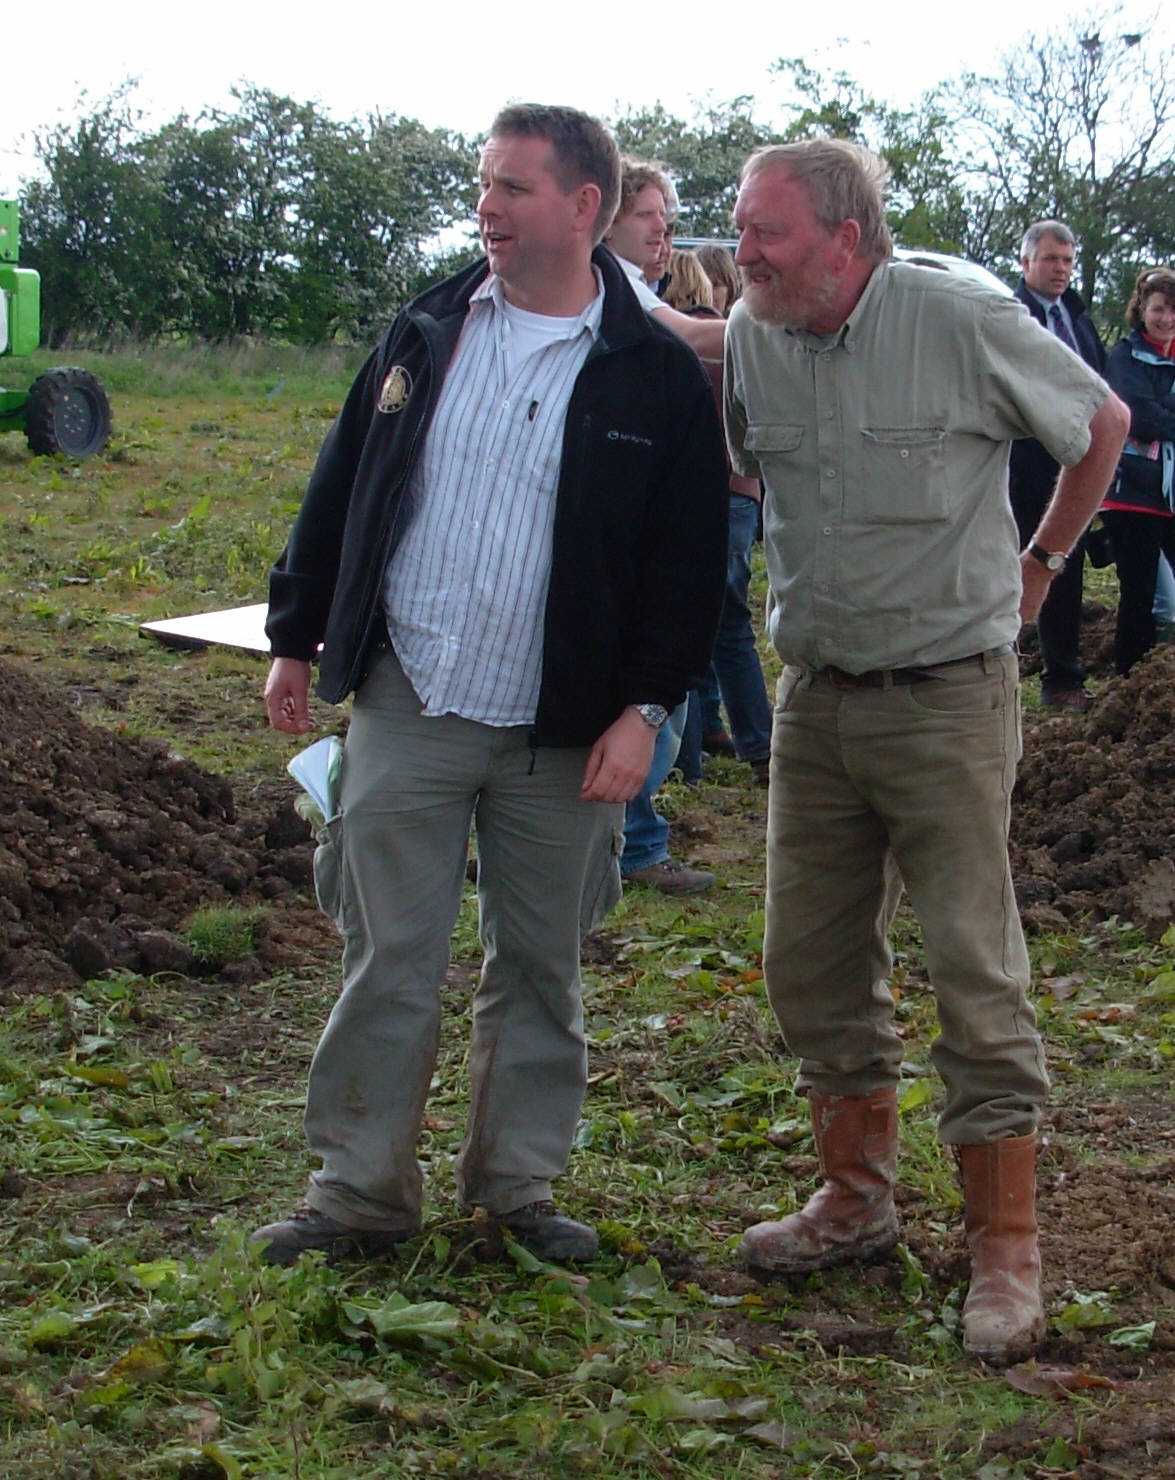 Pryor (right) discusses the excavation during the filming of a 2007 dig for ''[[Time Team]]'' with series editor Michael Douglas (left).